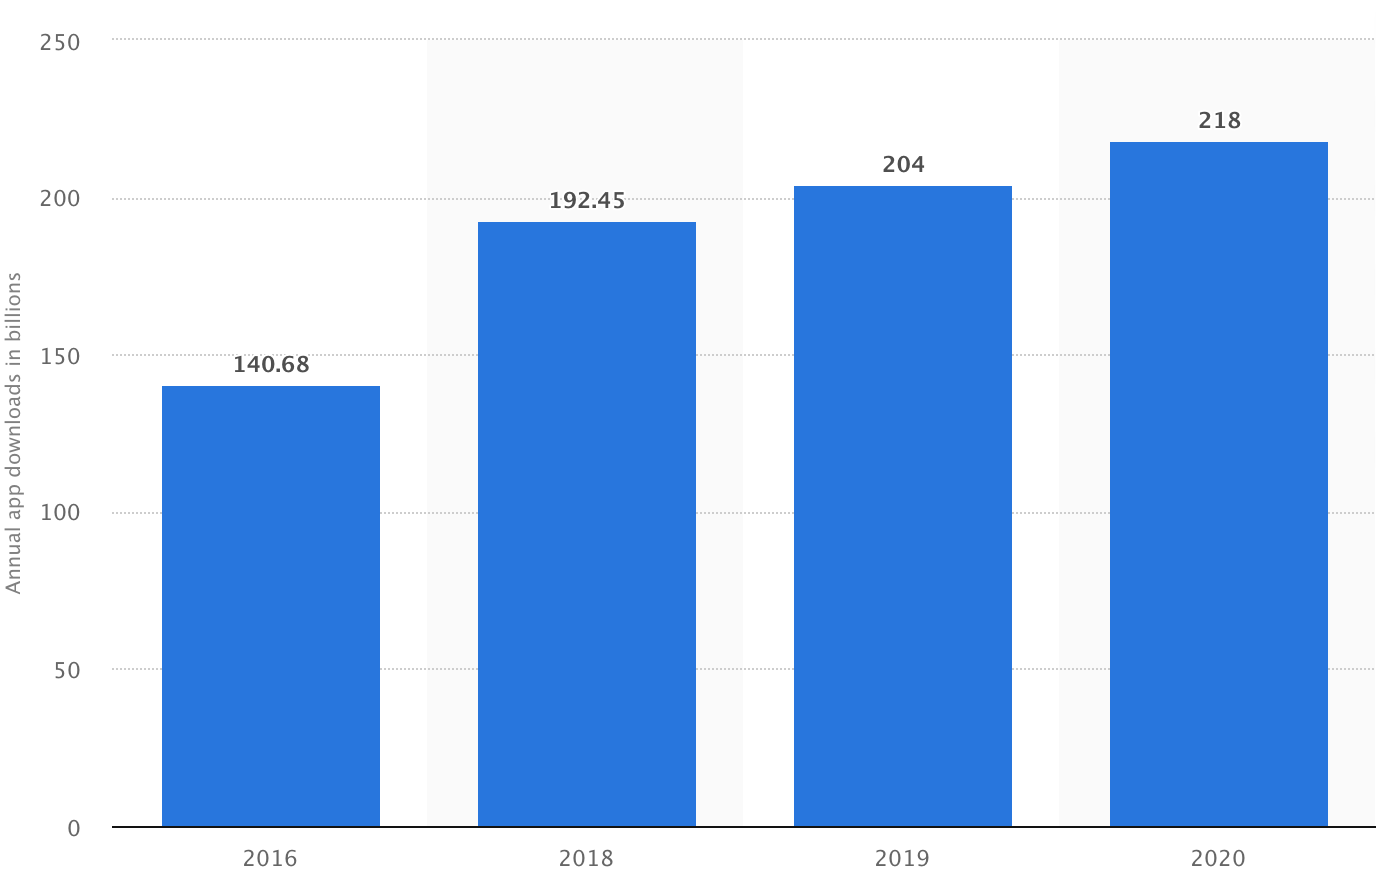 a graph showing the number of global downloads of mobile applications from 2016 to 2020